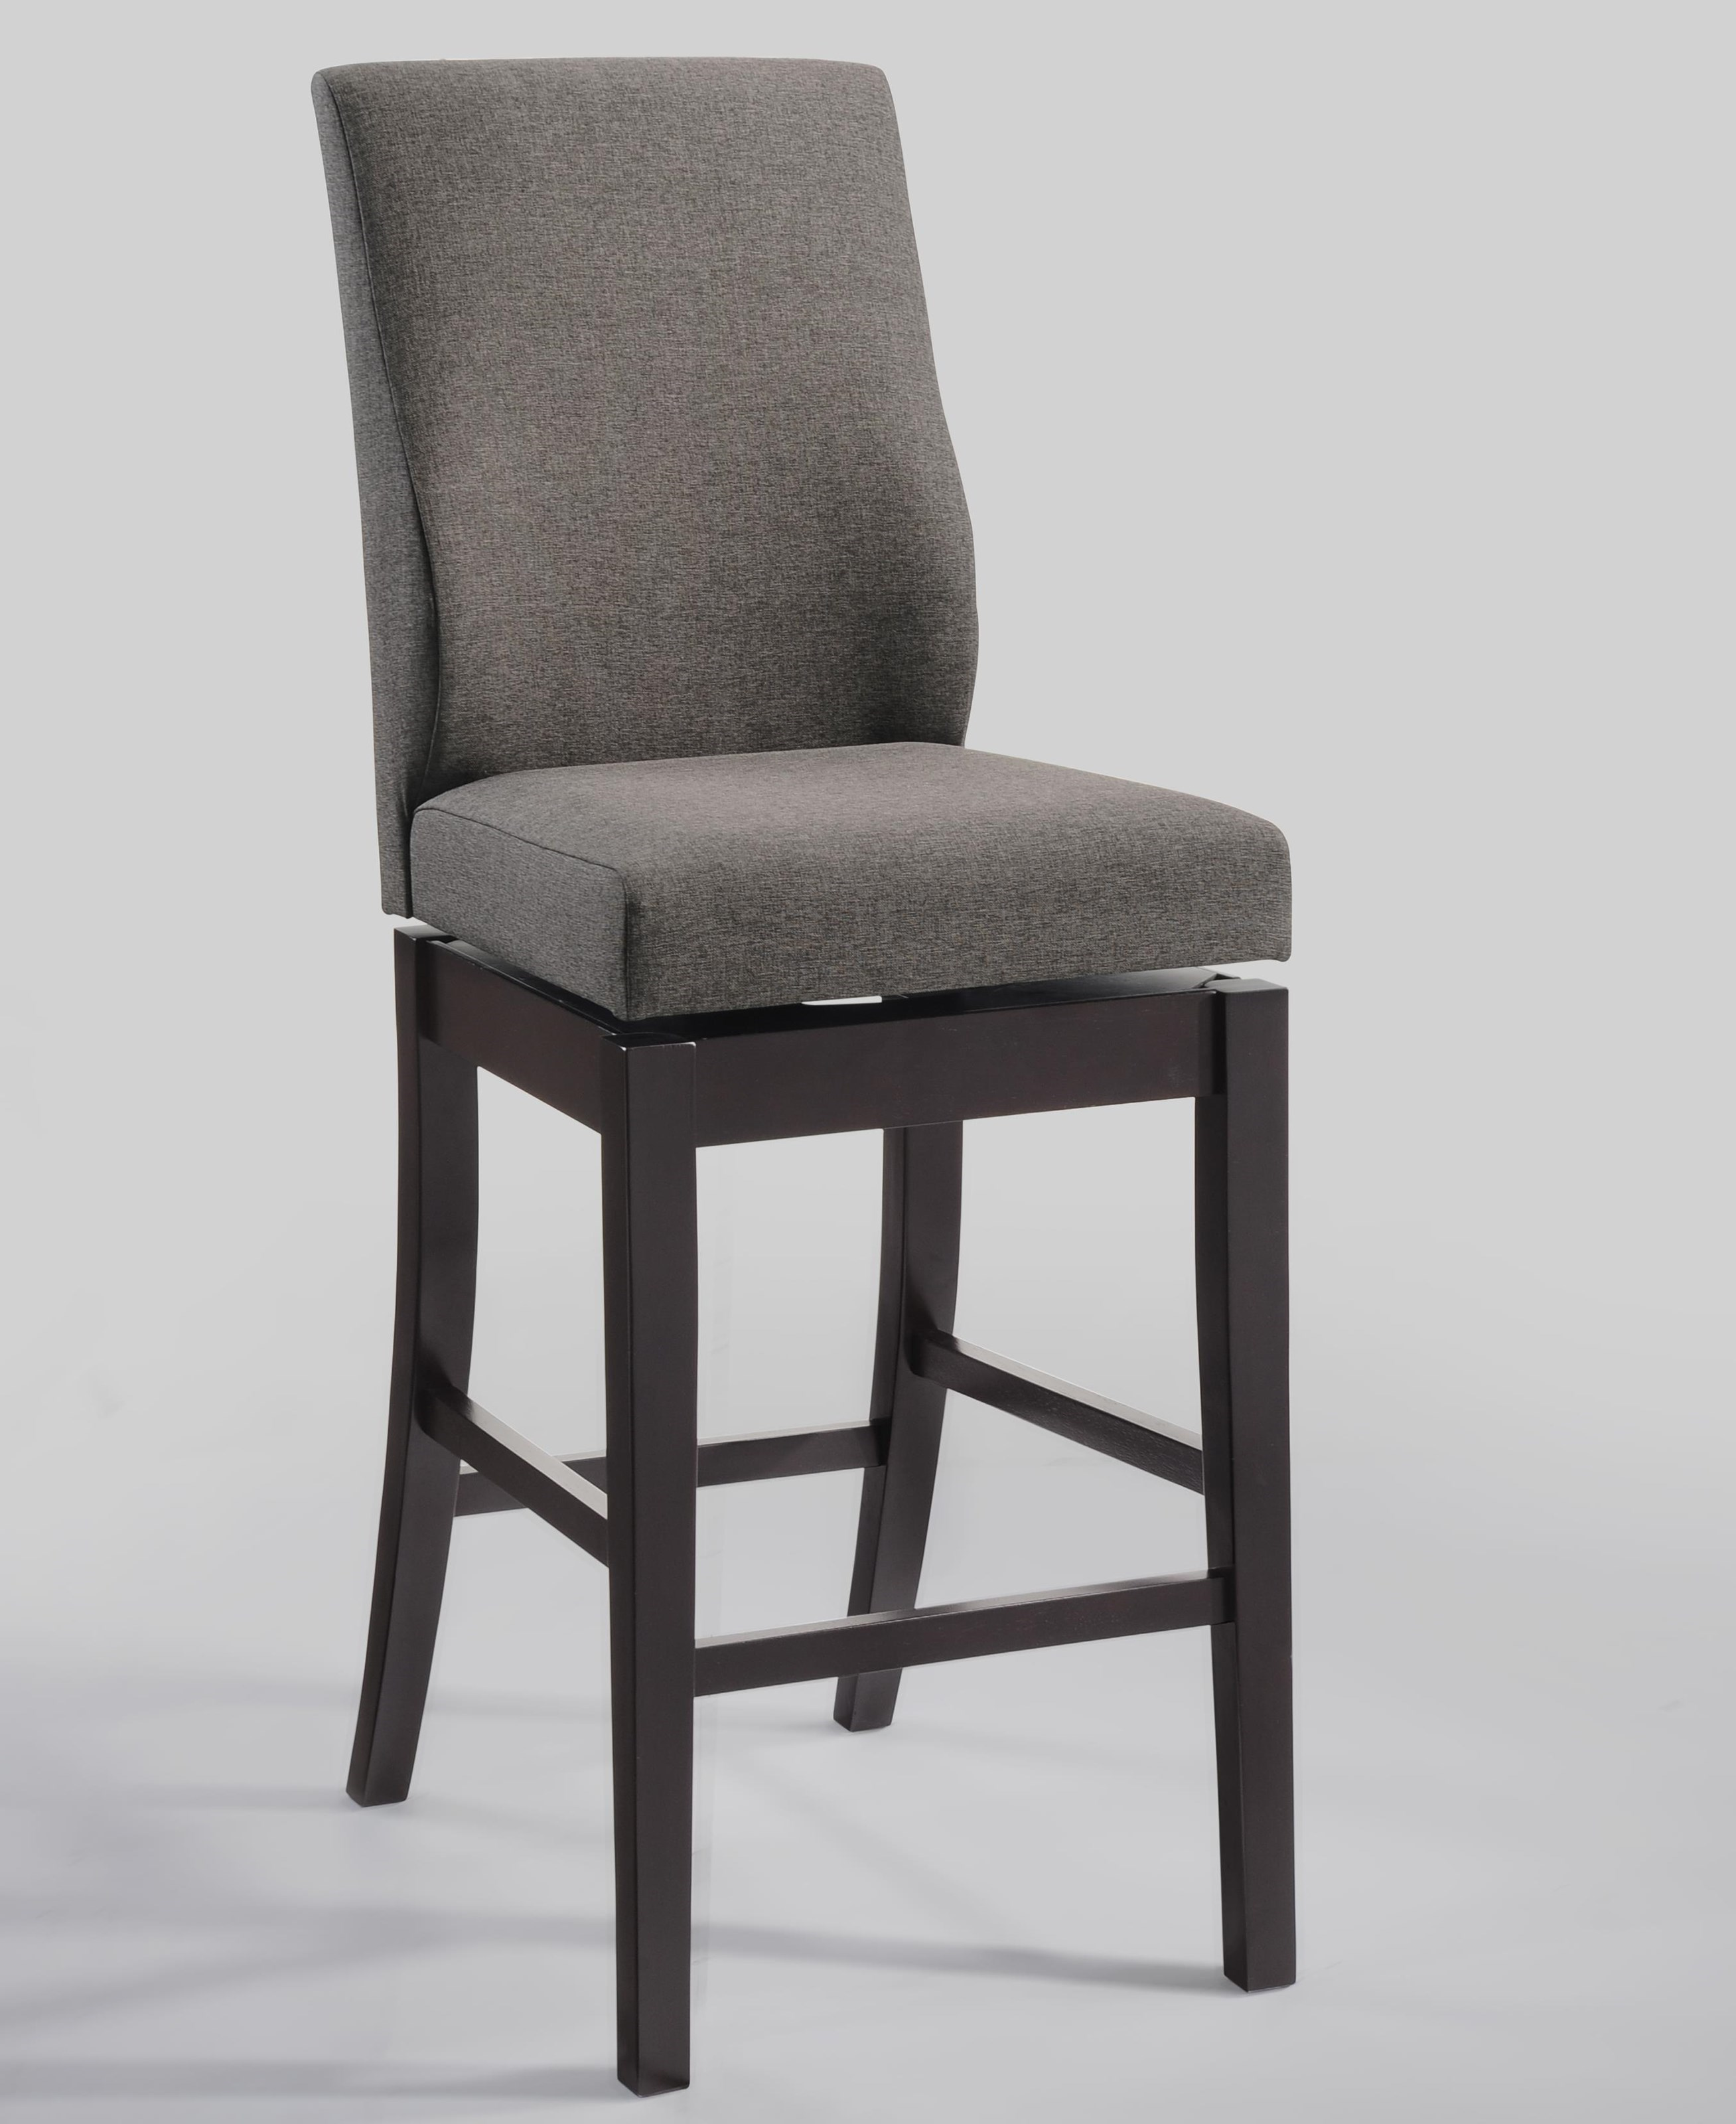 Crown Mark Bar Stools Tillary Swivel Counter Height Stool  : products2Fcrownmark2Fcolor2Fbar20stools20 20 8291615812986s 29 peb b1jpgscalebothampwidth500ampheight500ampfsharpen25ampdown from www.superstorevt.com size 500 x 500 jpeg 24kB